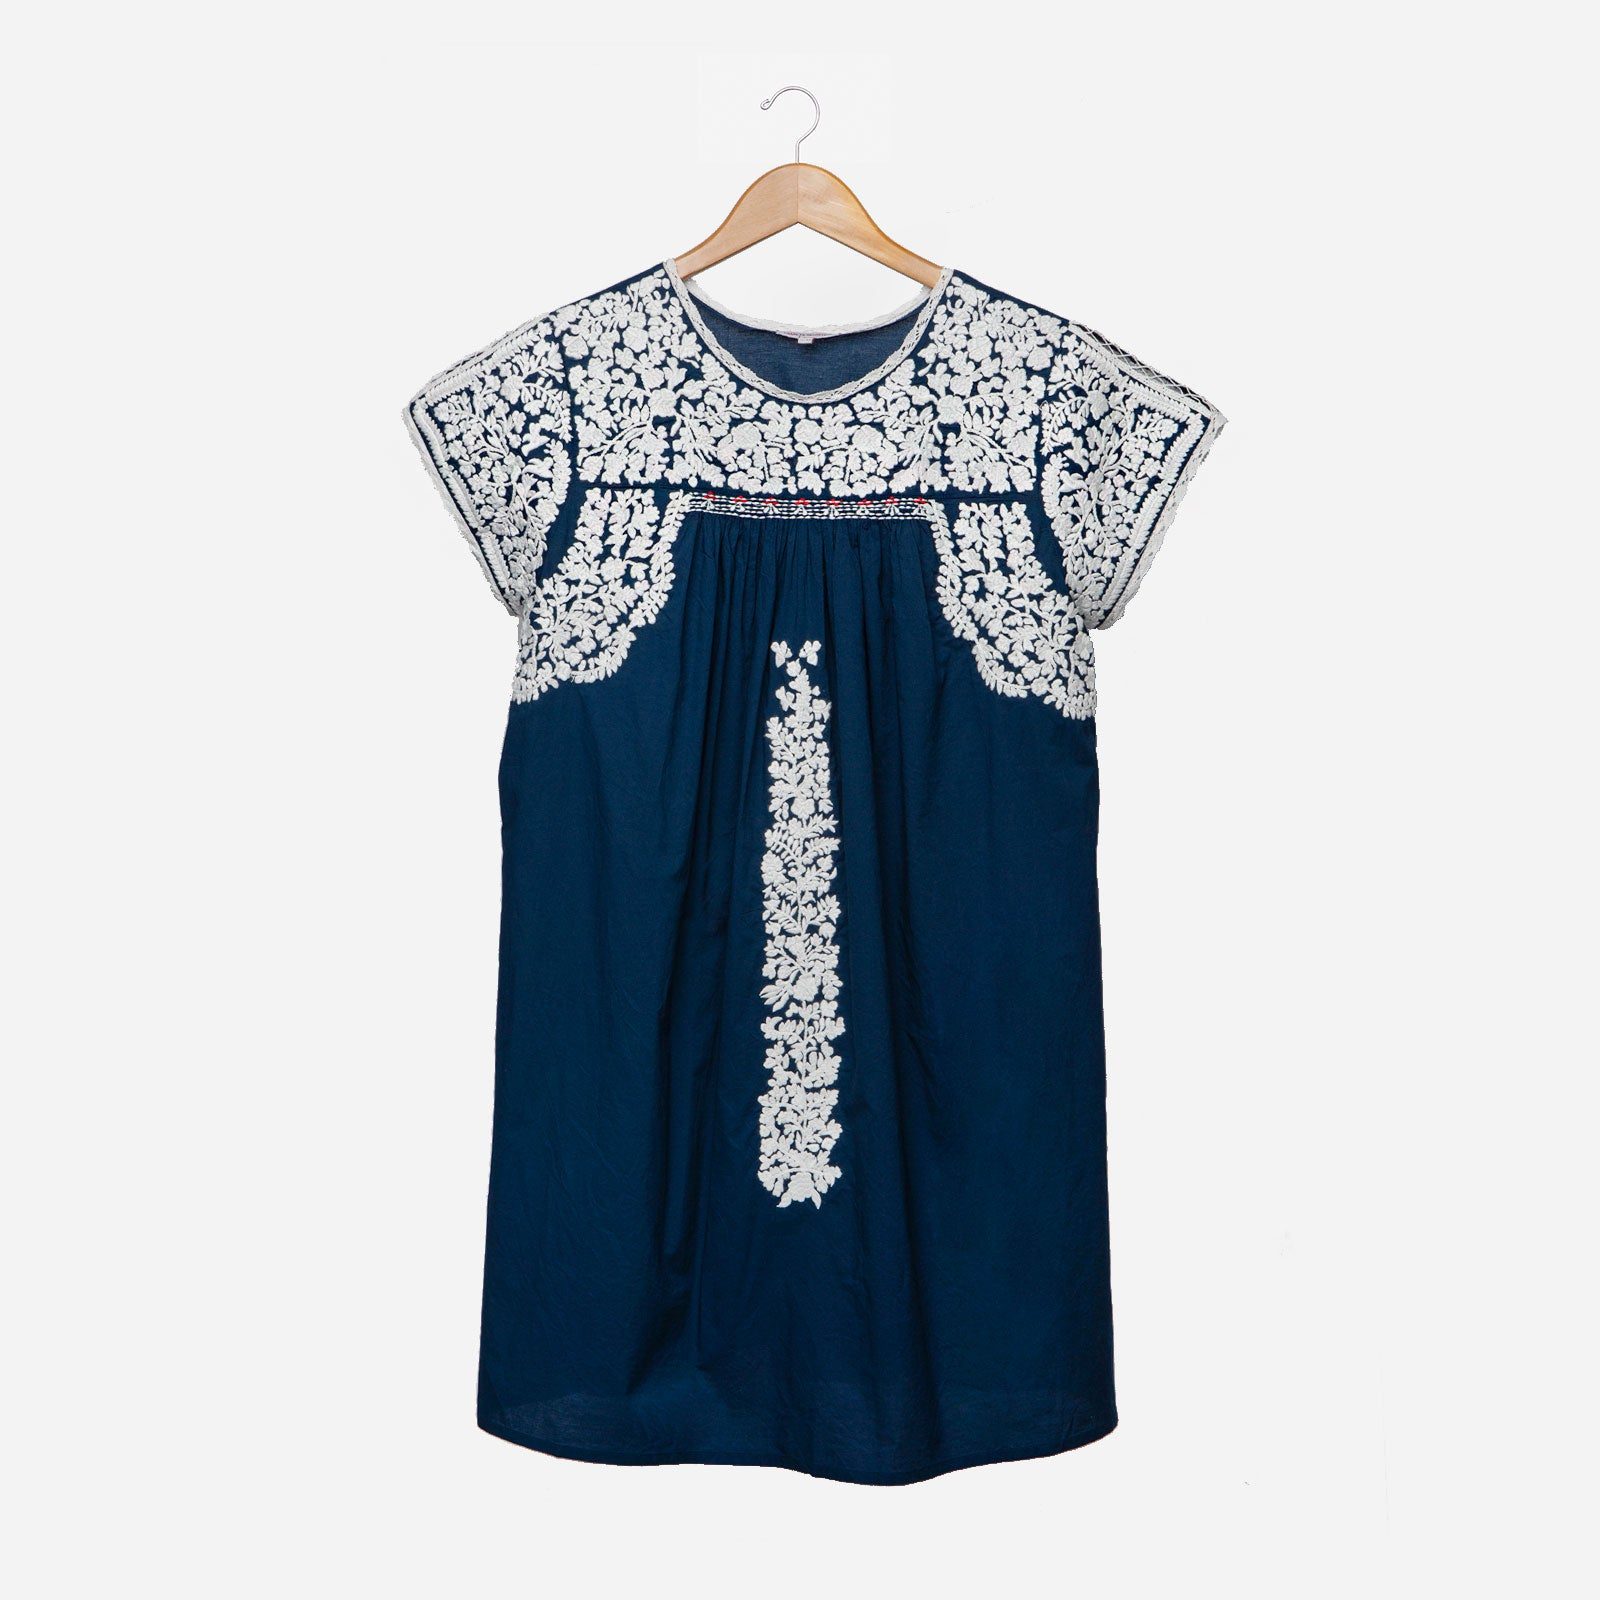 Floral Embroidered Lace Dress Navy Oyster